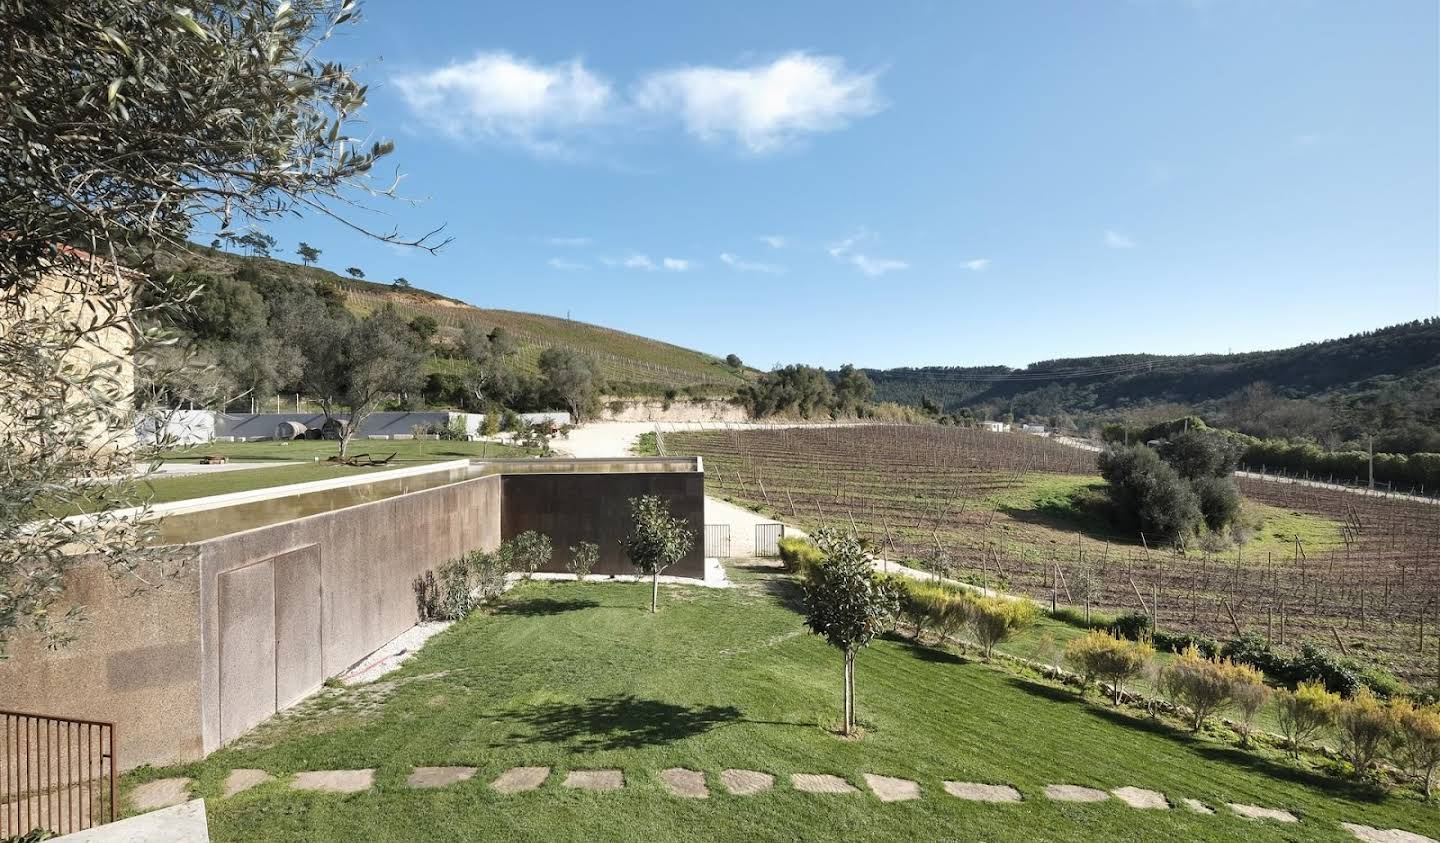 Vineyard with pool and outbuildings Torres Vedras